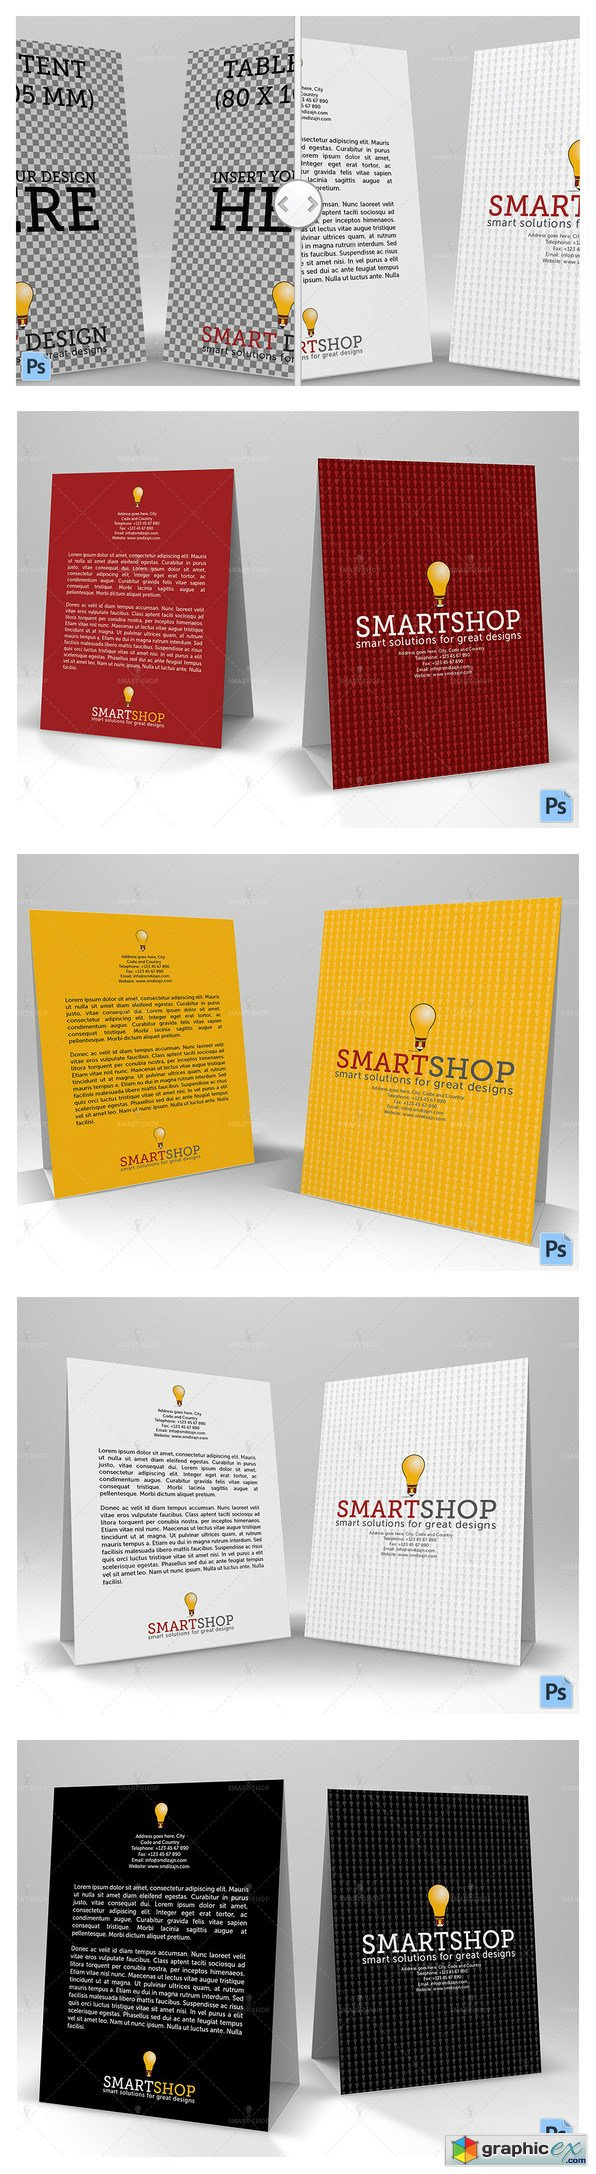 Table Tent Mockup 601191